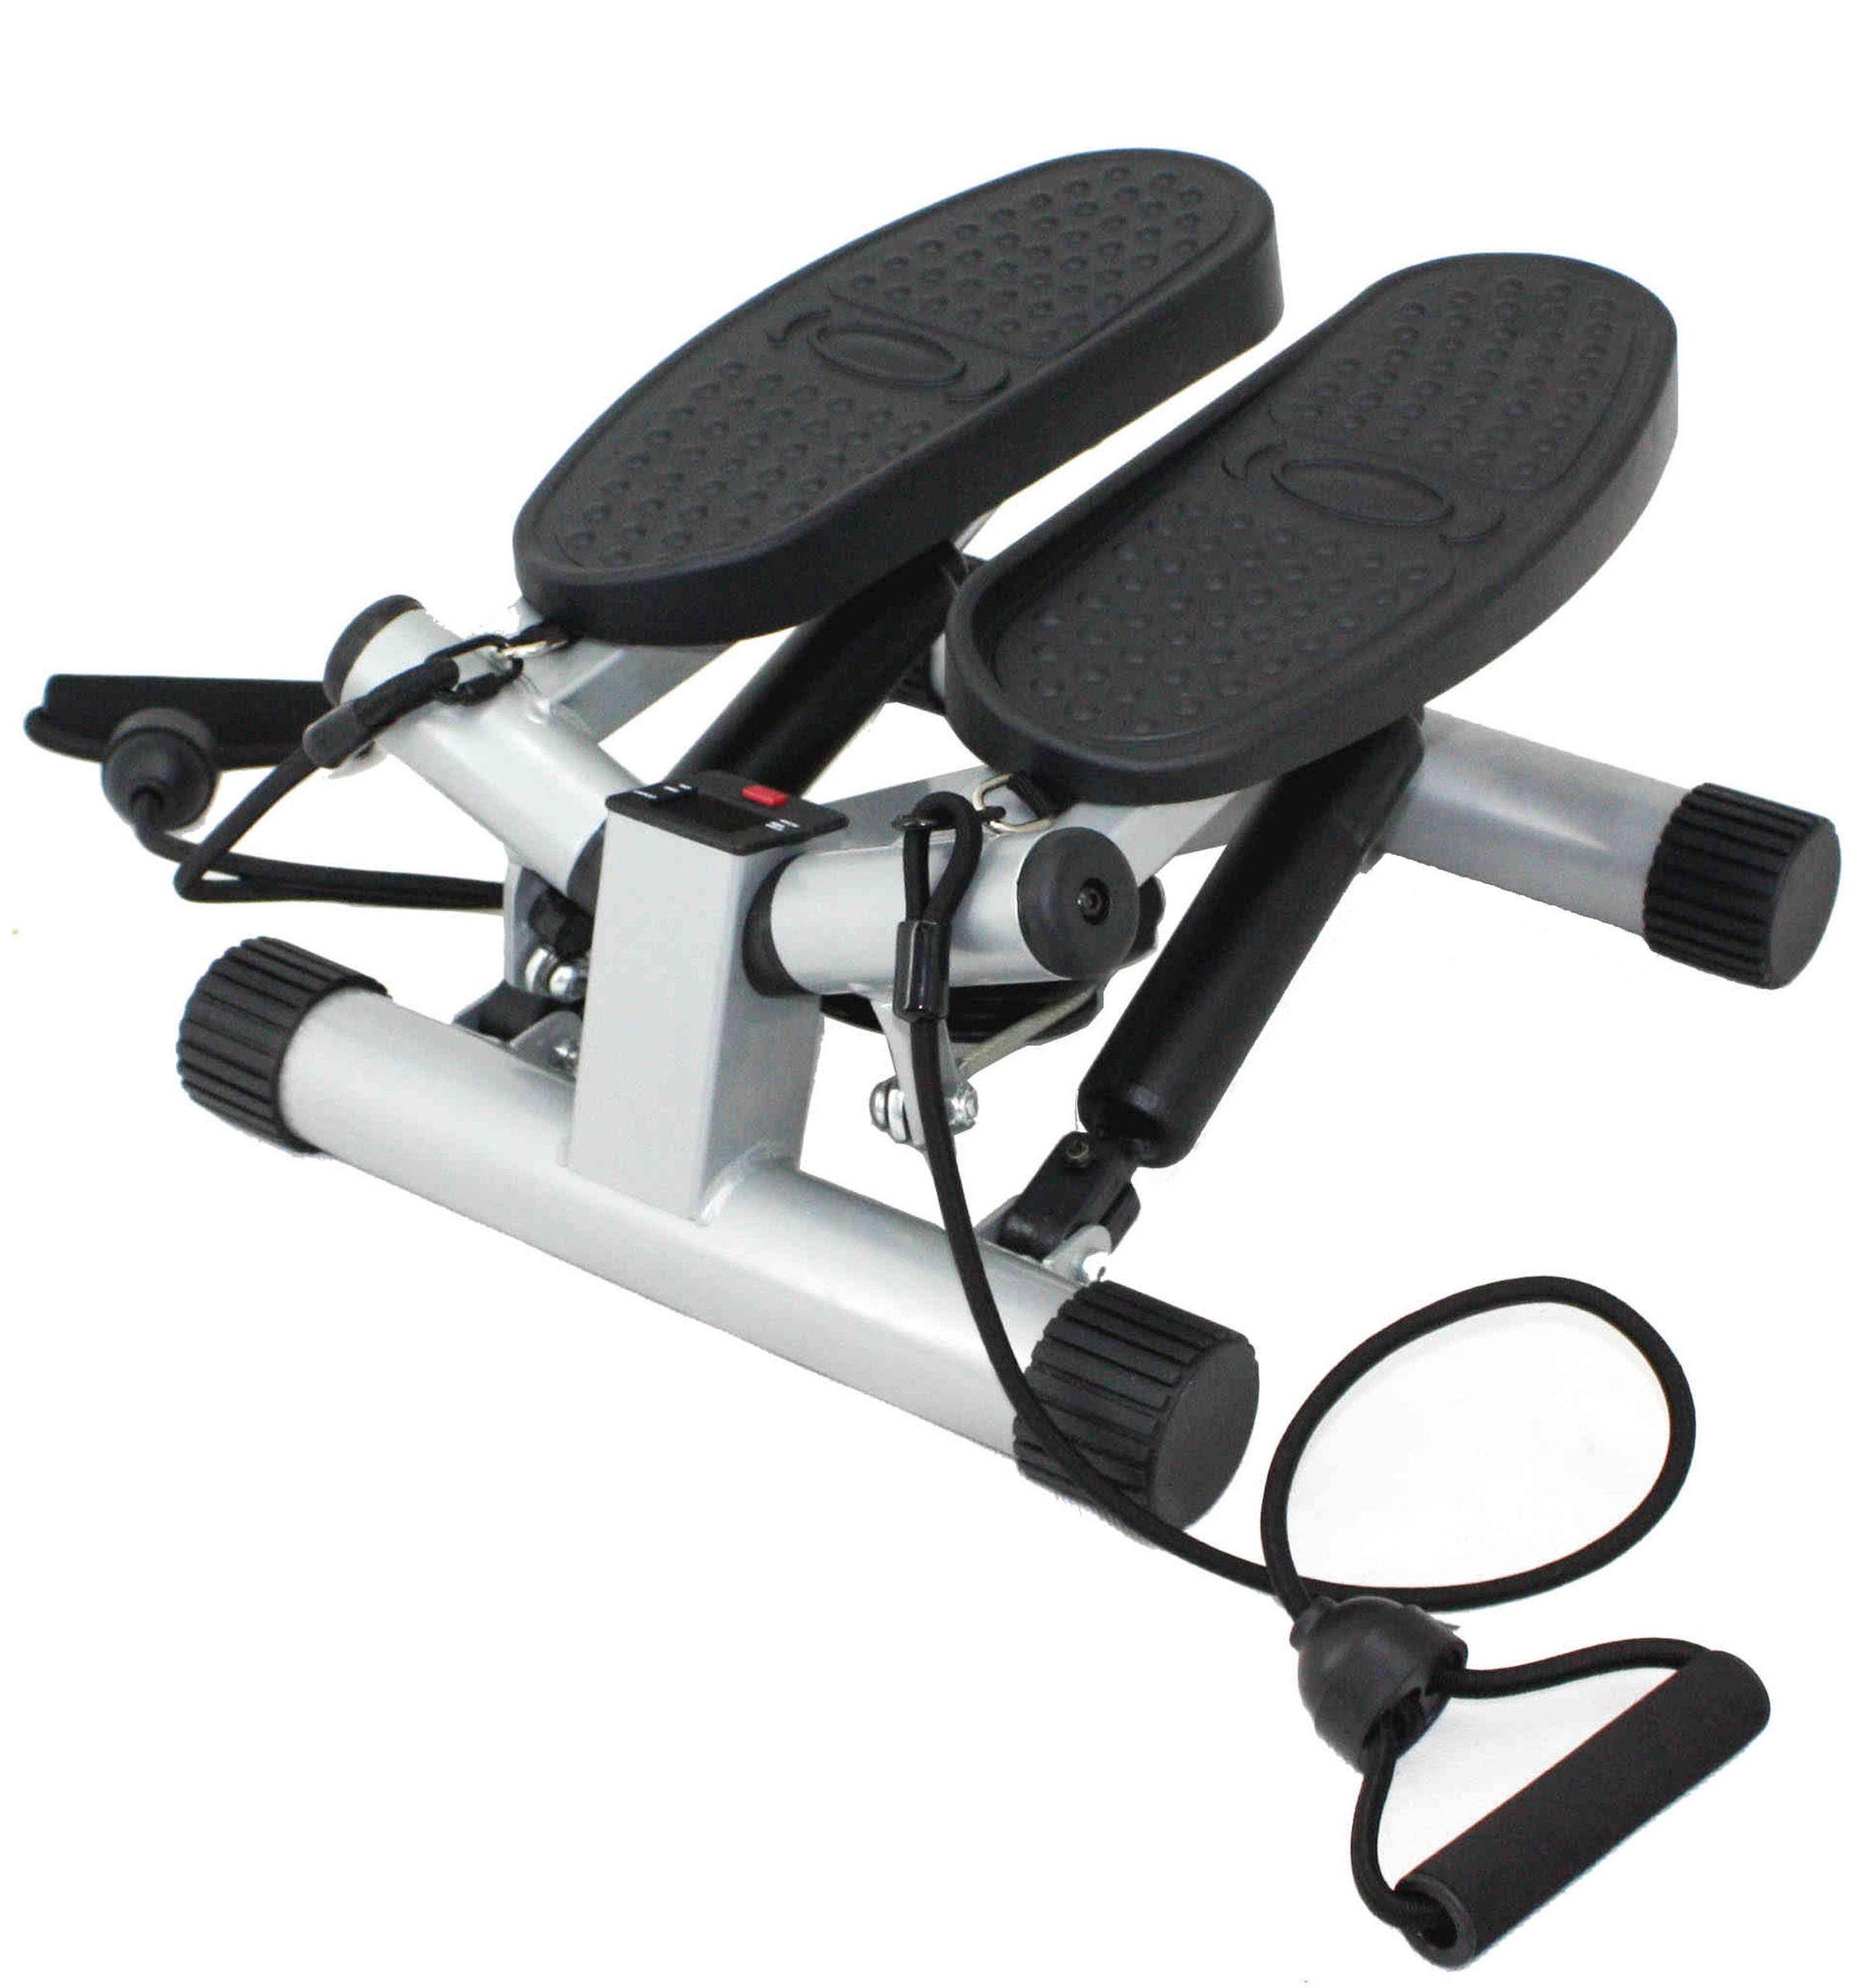 Sunny Health & Fitness Mini Stepper Stair Stepper Exercise Equipment with Resistance Bands and Twisting Action - NO. 068 (Renewed)